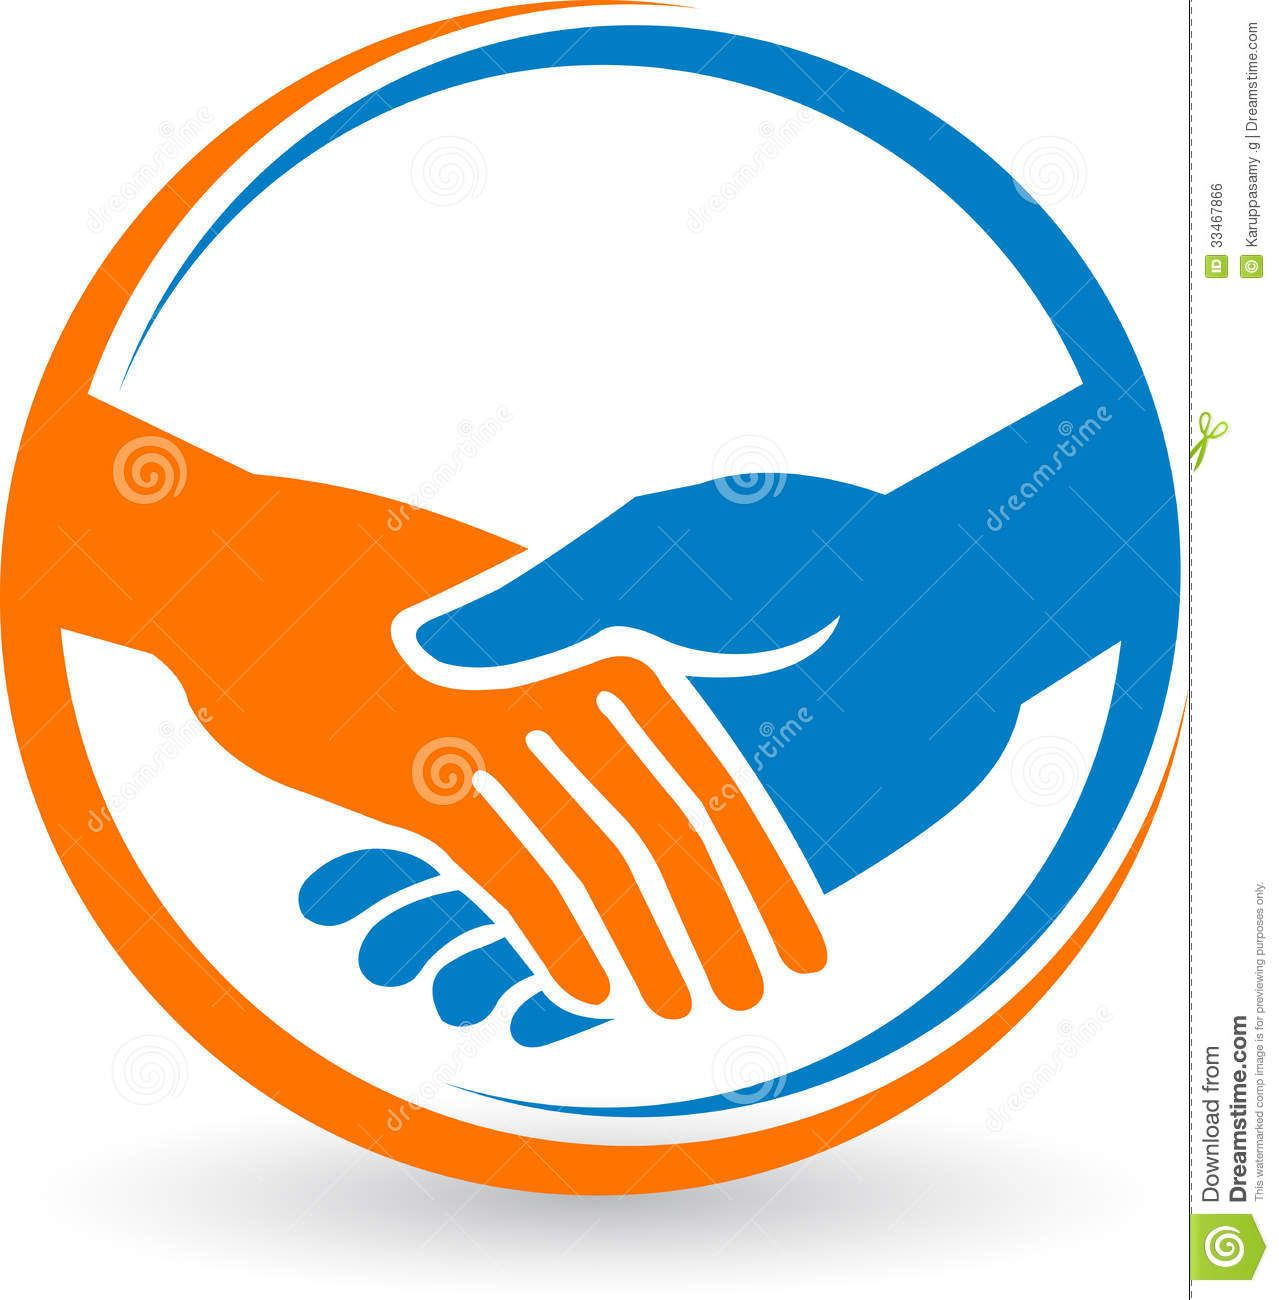 Orange Hand Logo - Hand Shake Logo - Download From Over 41 Million High Quality Stock ...